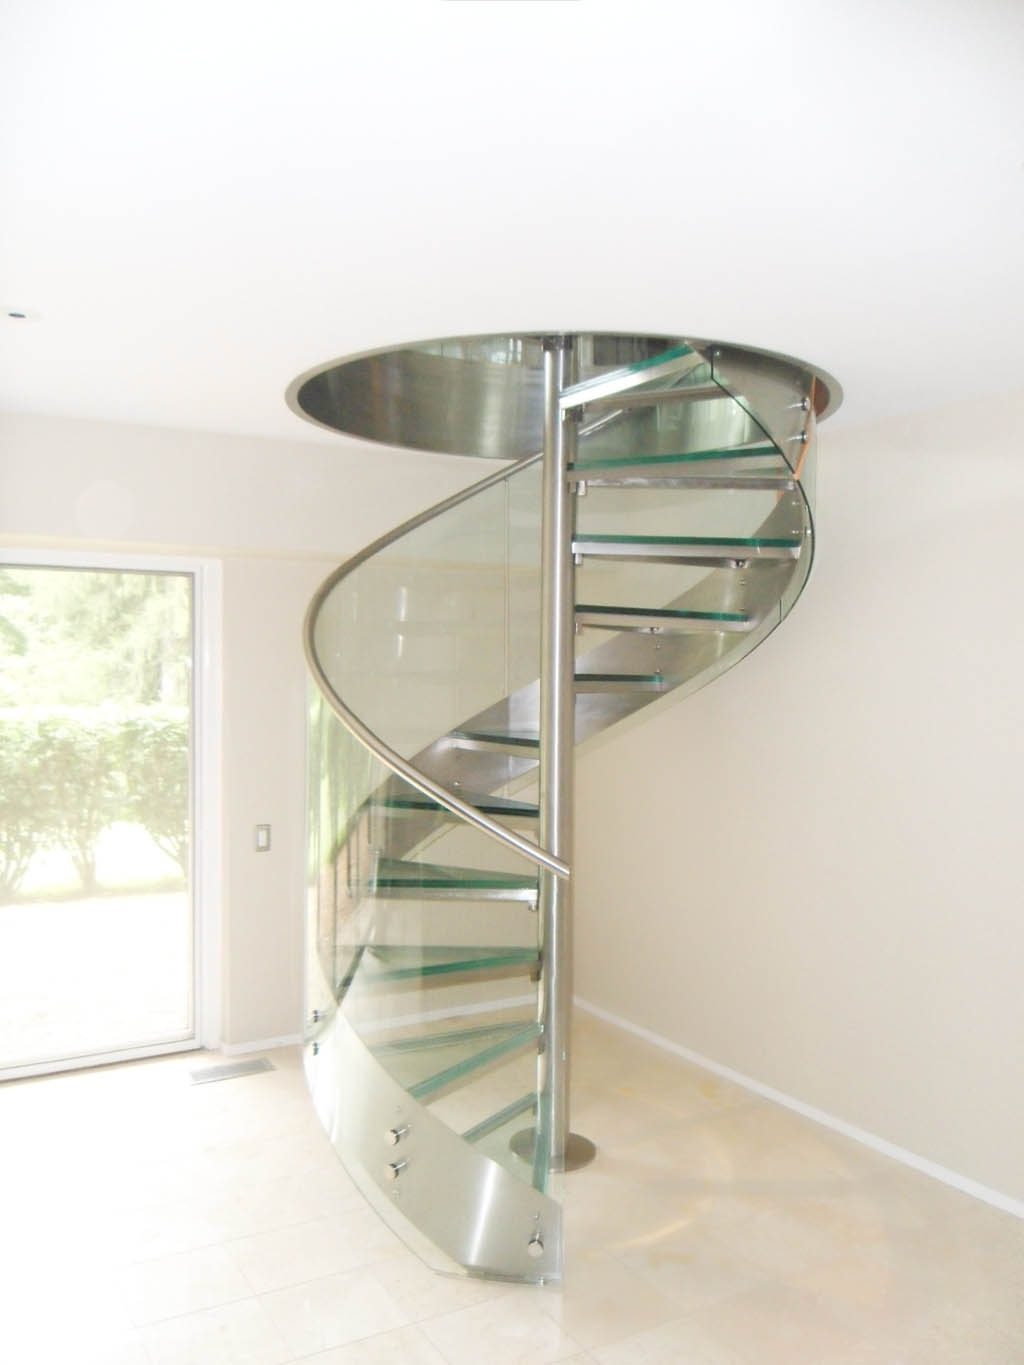 Stainless Steel And Glass Spiral Stair In Residence 4 Foreman   Stainless Steel Spiral Staircase   Custom Iron   Wooden   Indoor   Bronze   Top